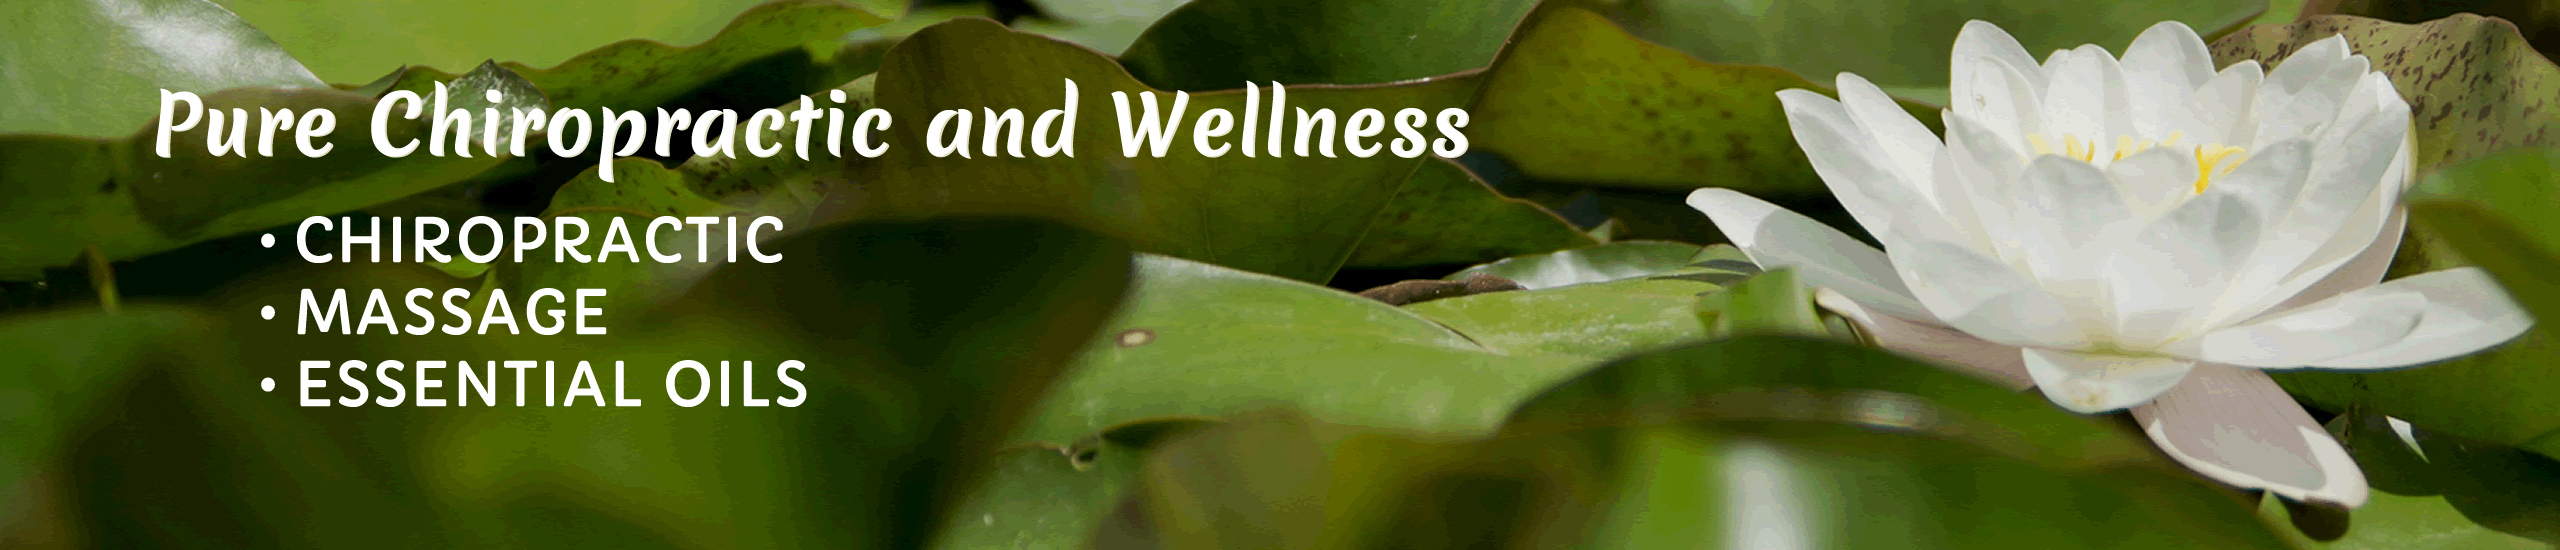 Pure Chiropractic and Wellness